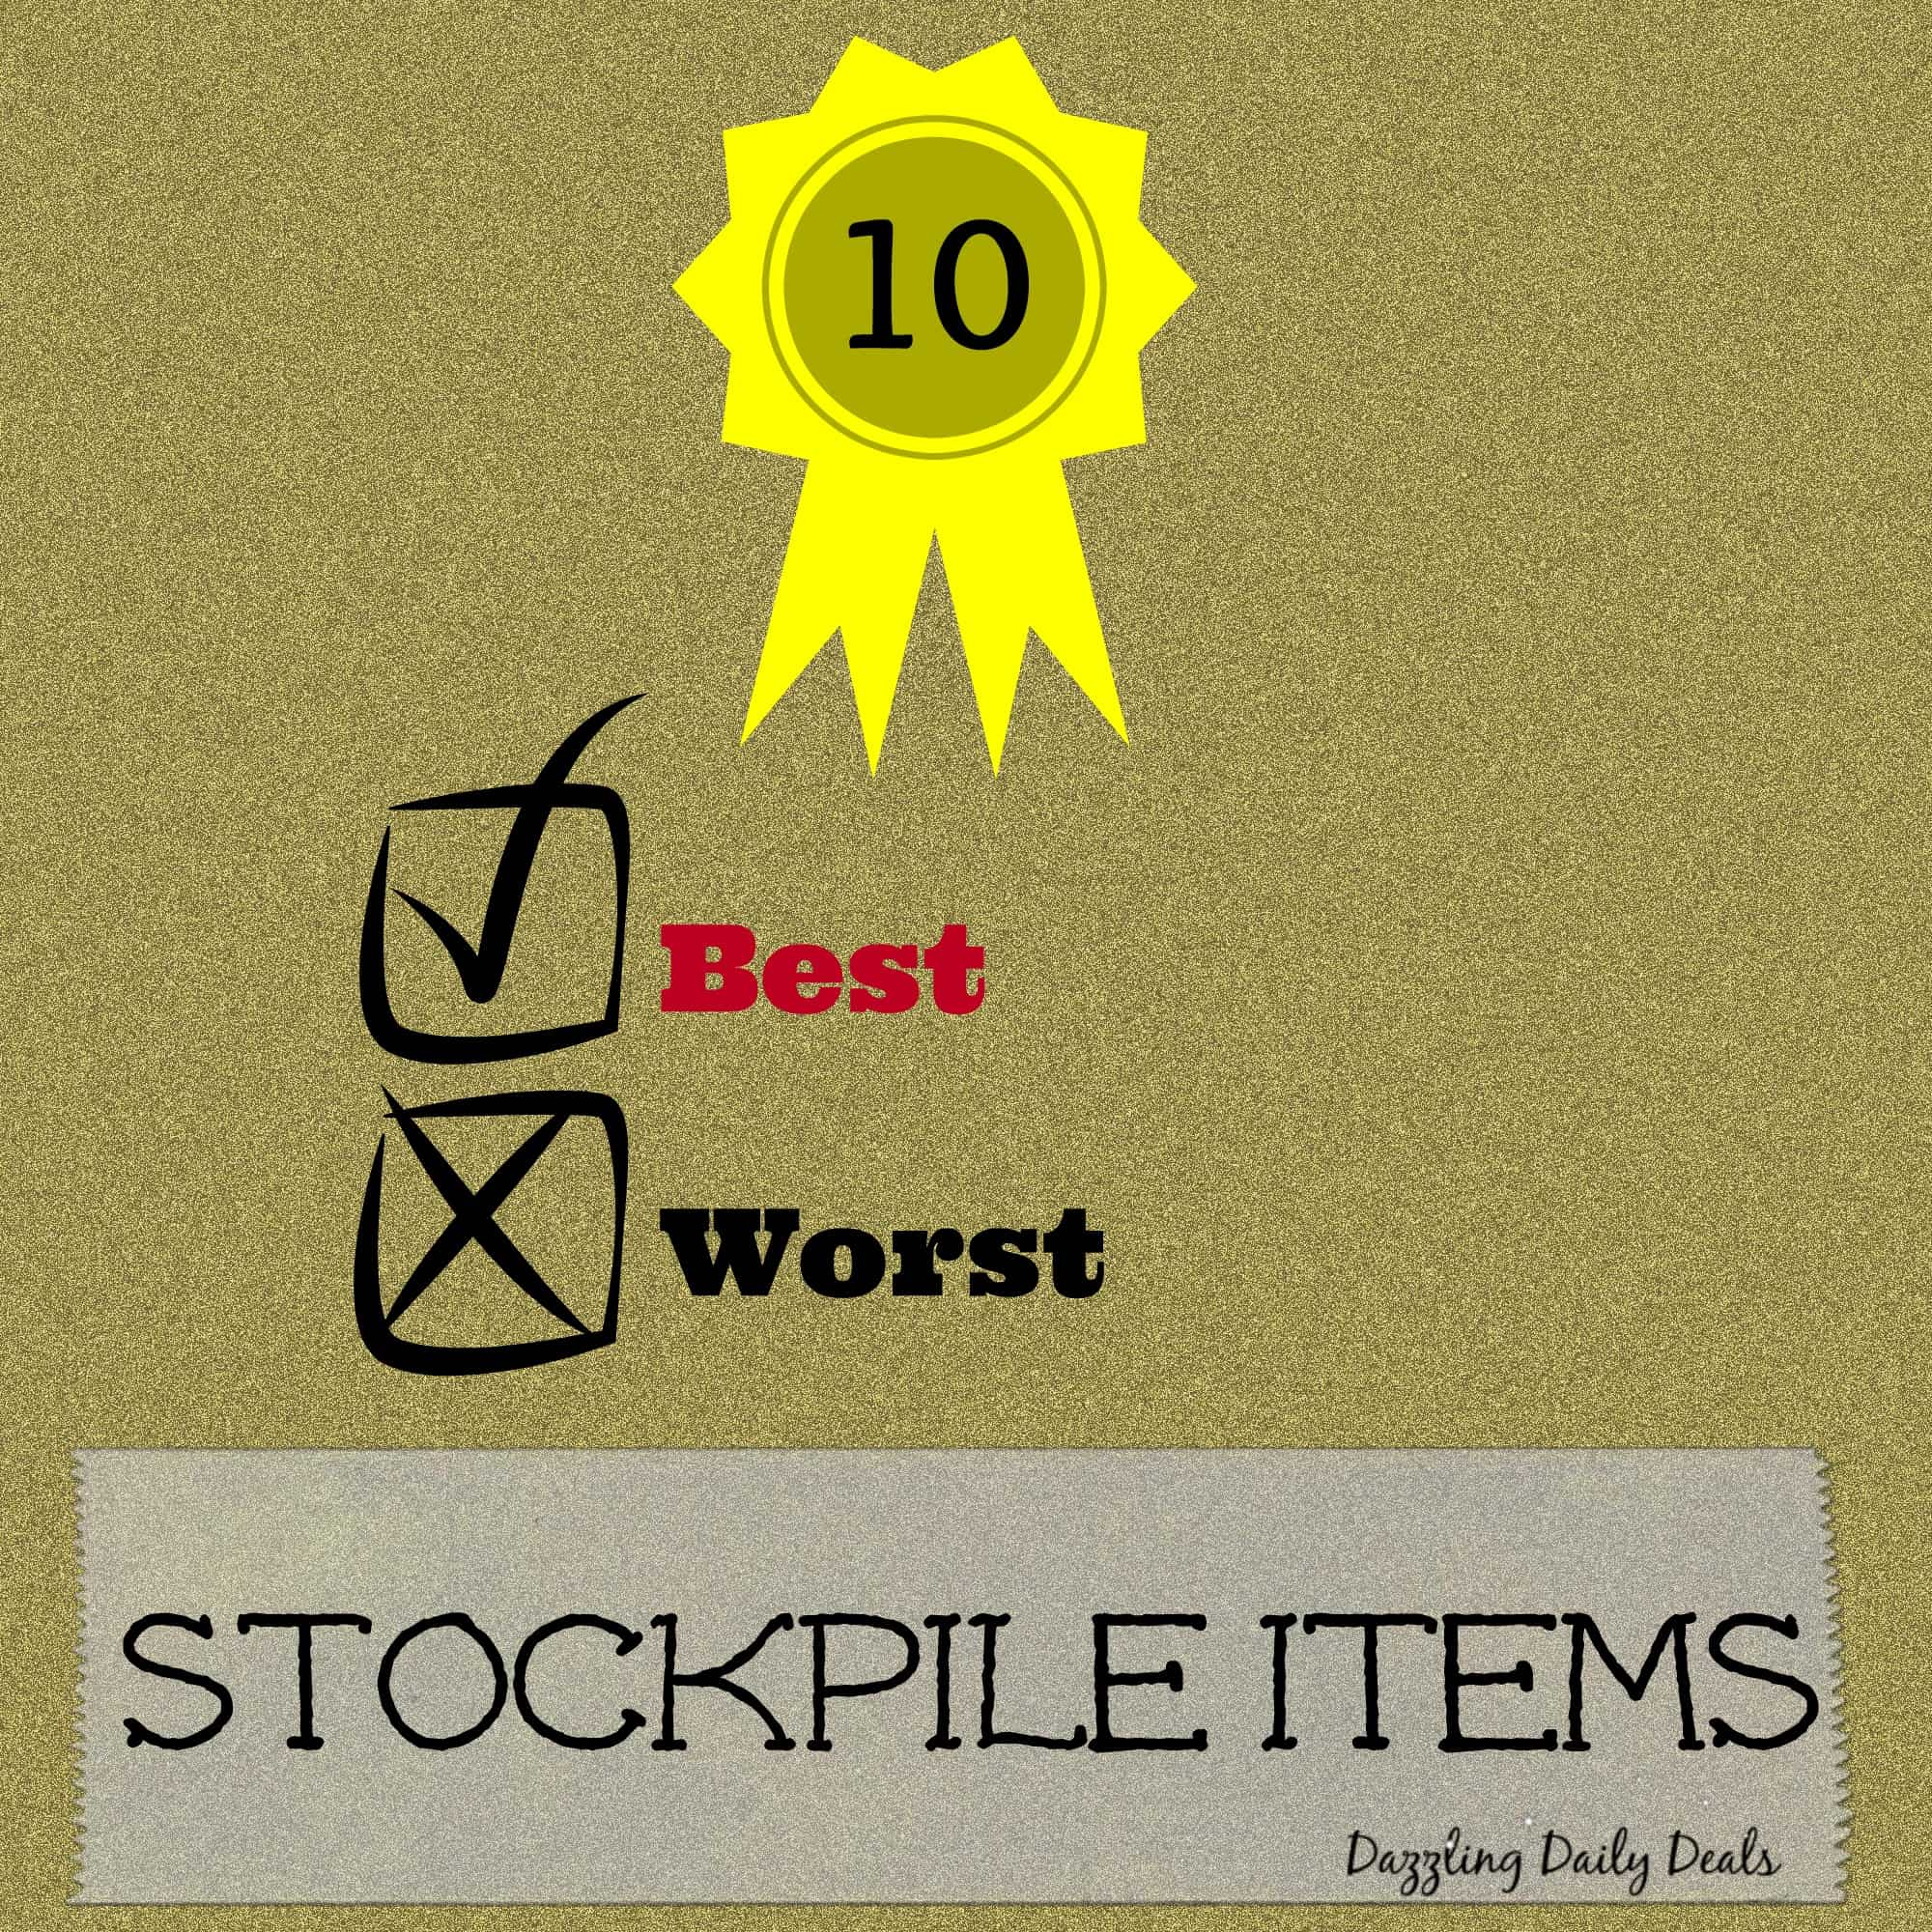 10 of the BEST and WORST Things to Stockpile